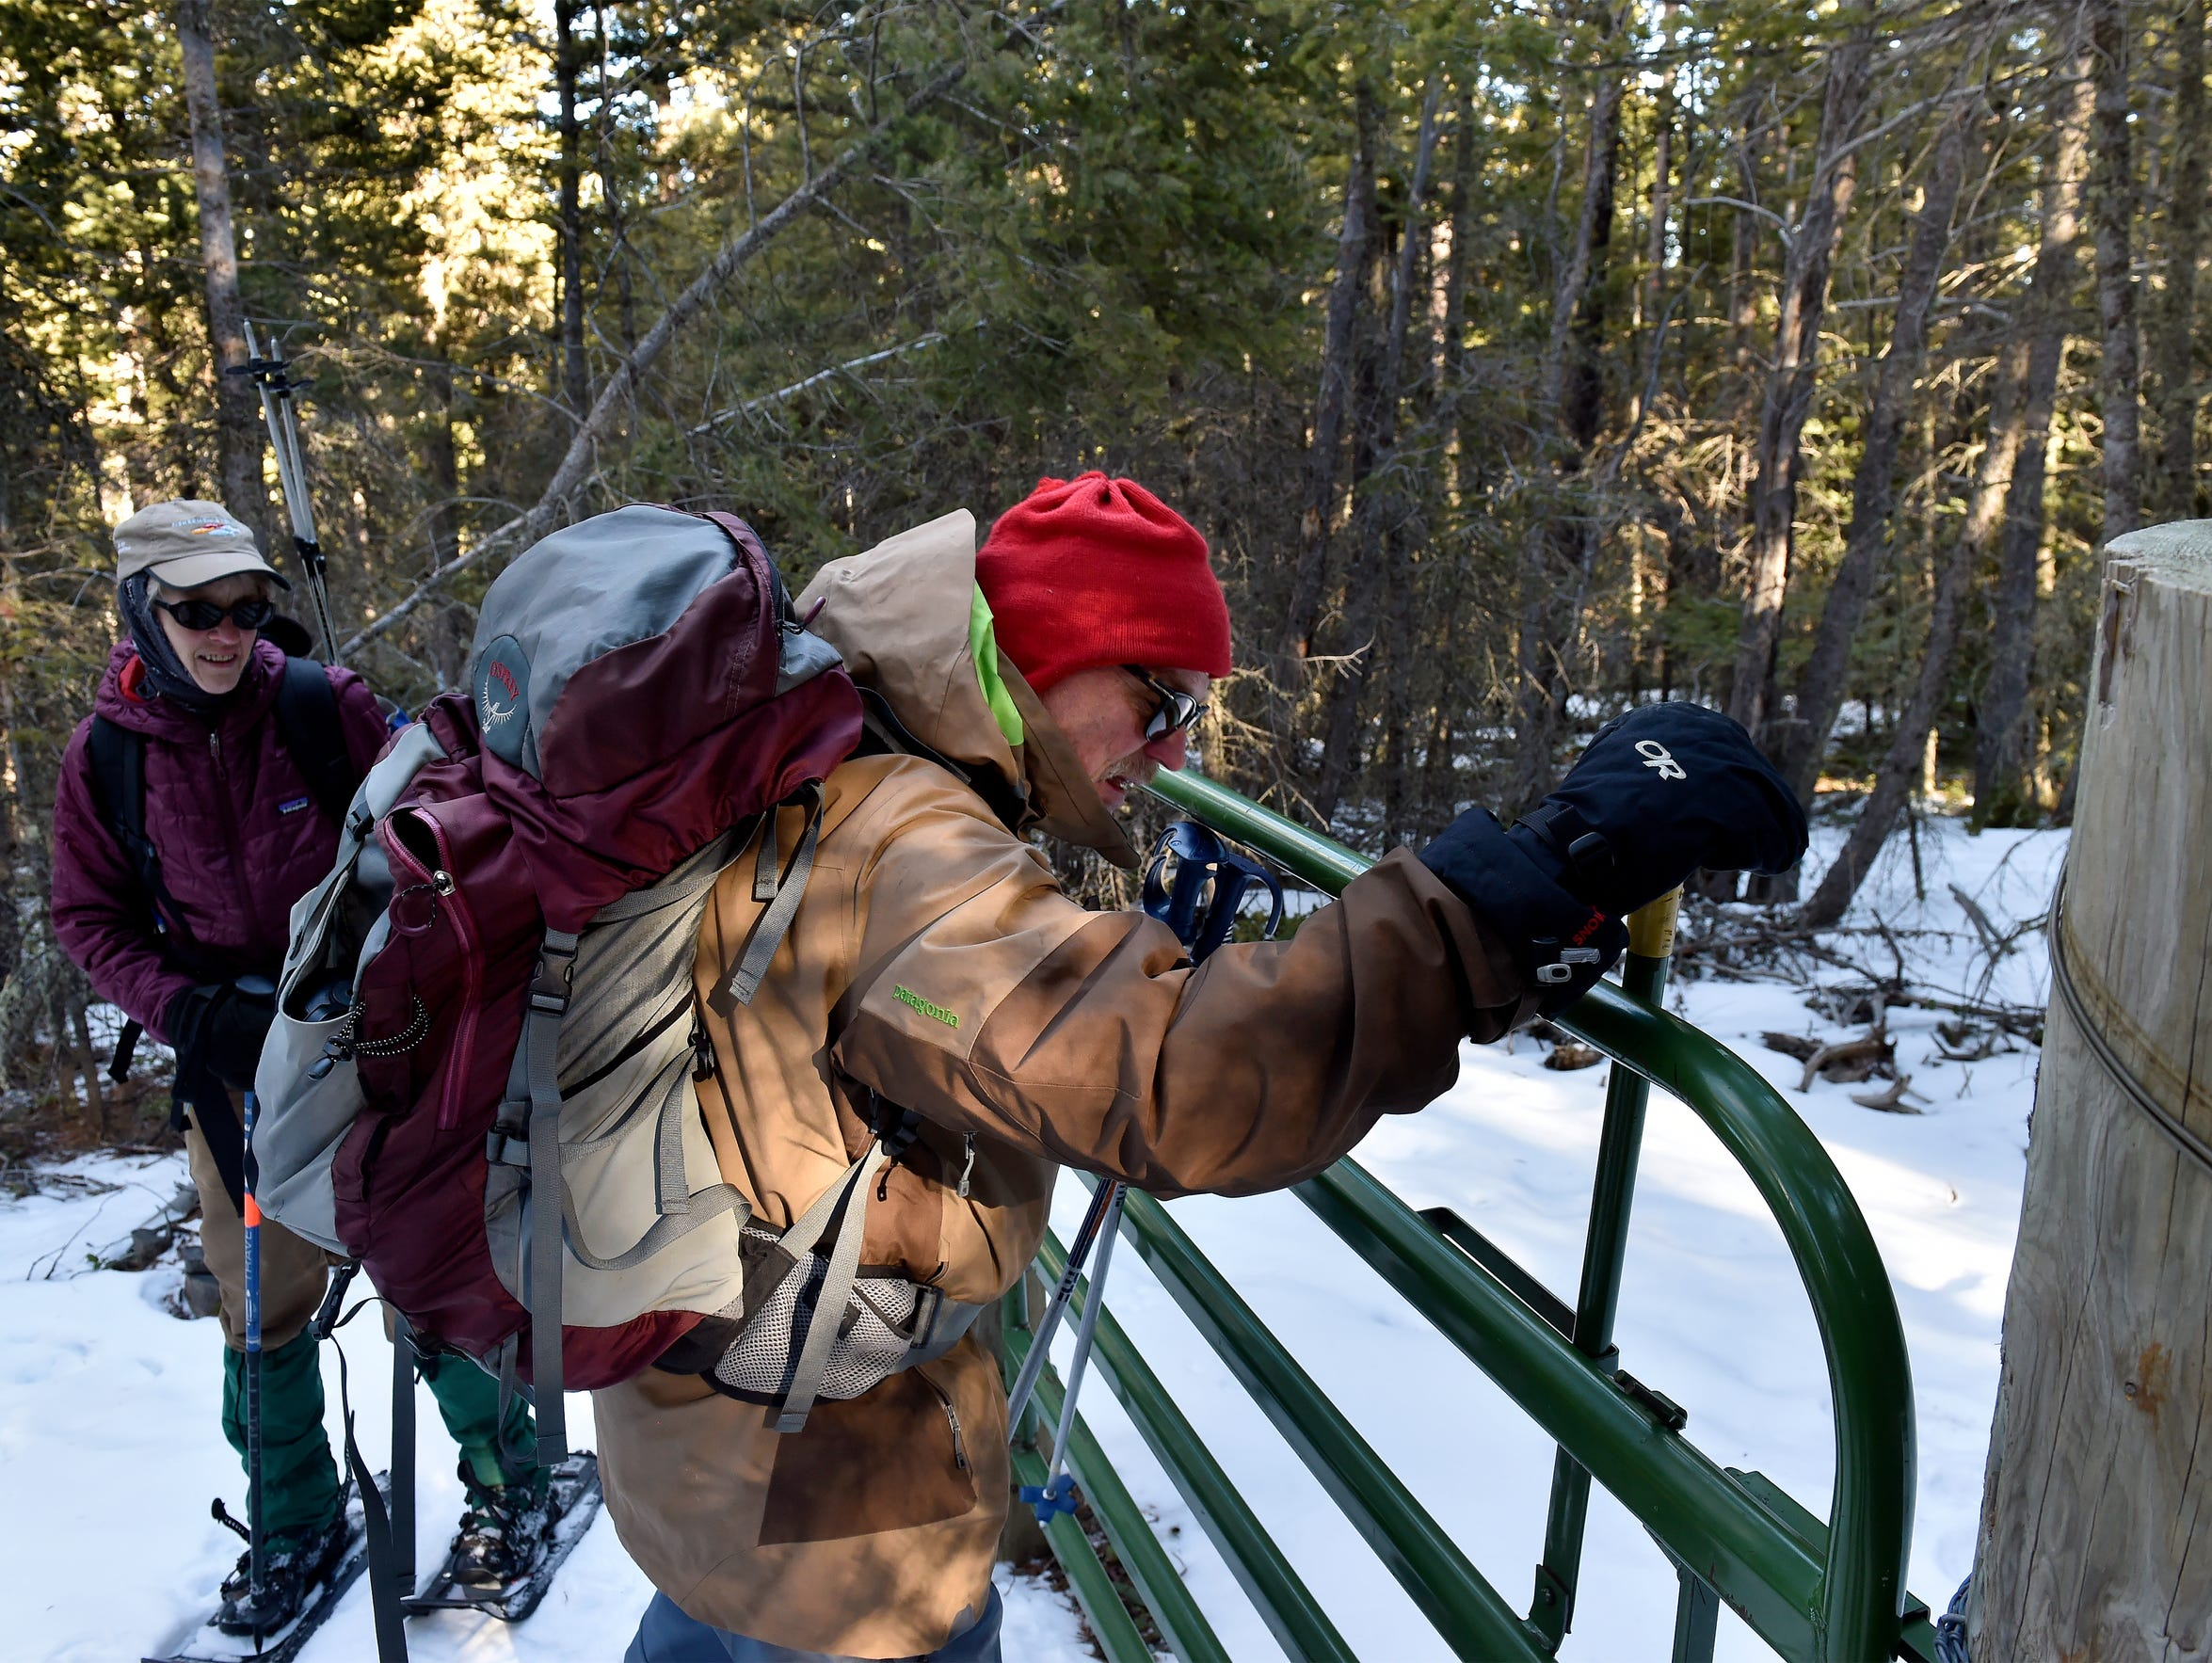 Mark Good, right, of the Great Falls-based Island Range Chapter of the Montana Wilderness Association, opens a gate while snowshoeing in the Big Snowy Mountains Wilderness Study Area near Lewistown.